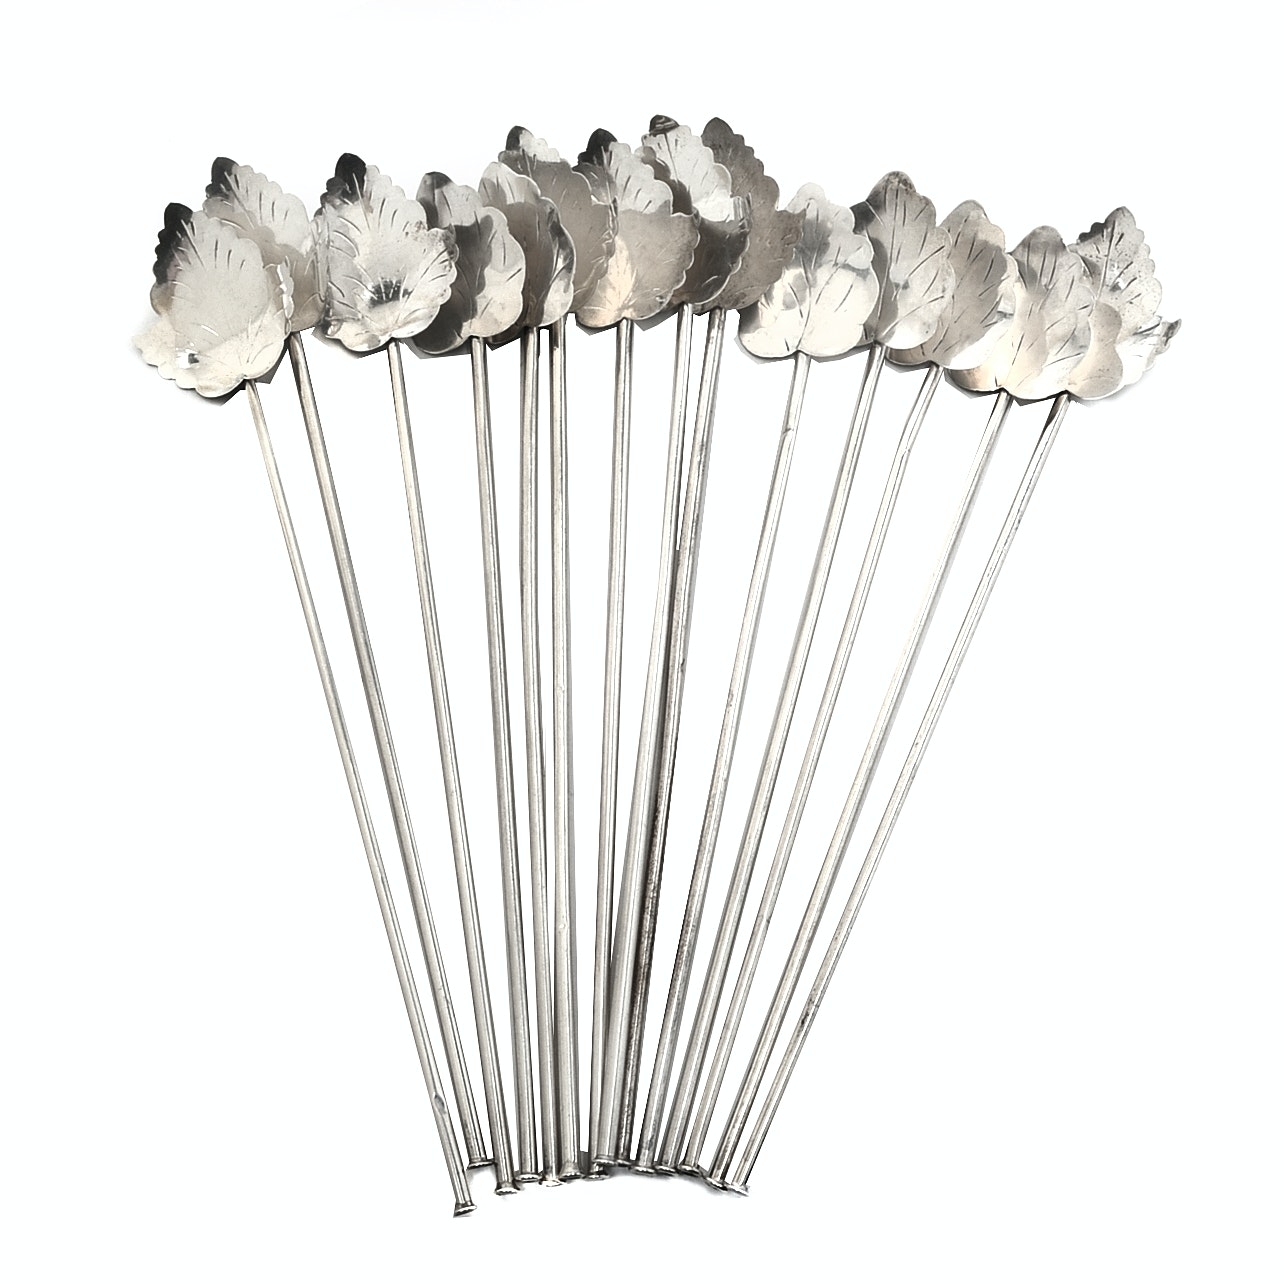 Mexican Sterling Silver Leaf Iced Tea Stirrers/Straws